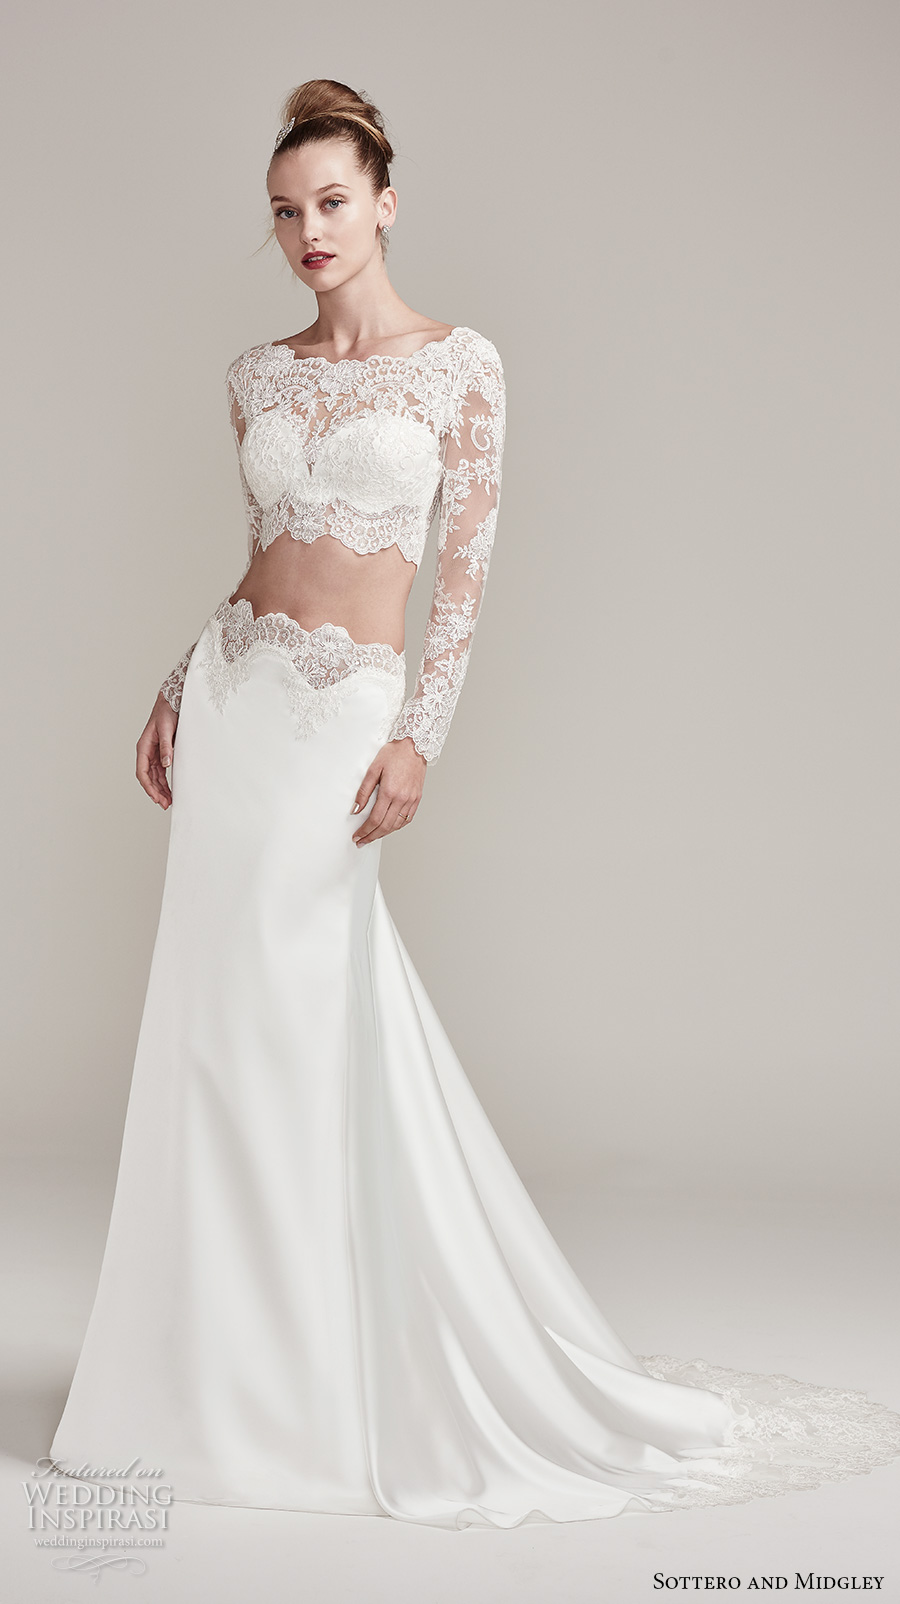 Sottero and midgley fall 2016 wedding dresses am lie for Wedding dress skirt and top